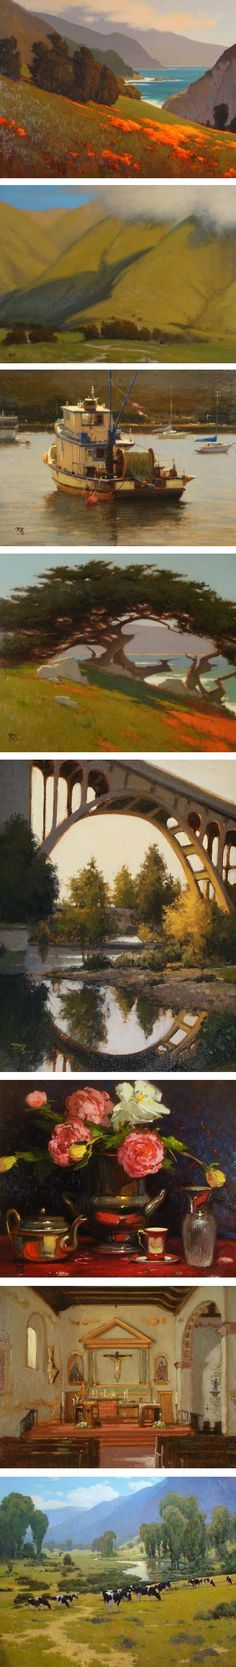 California plein air painter Brian Blood